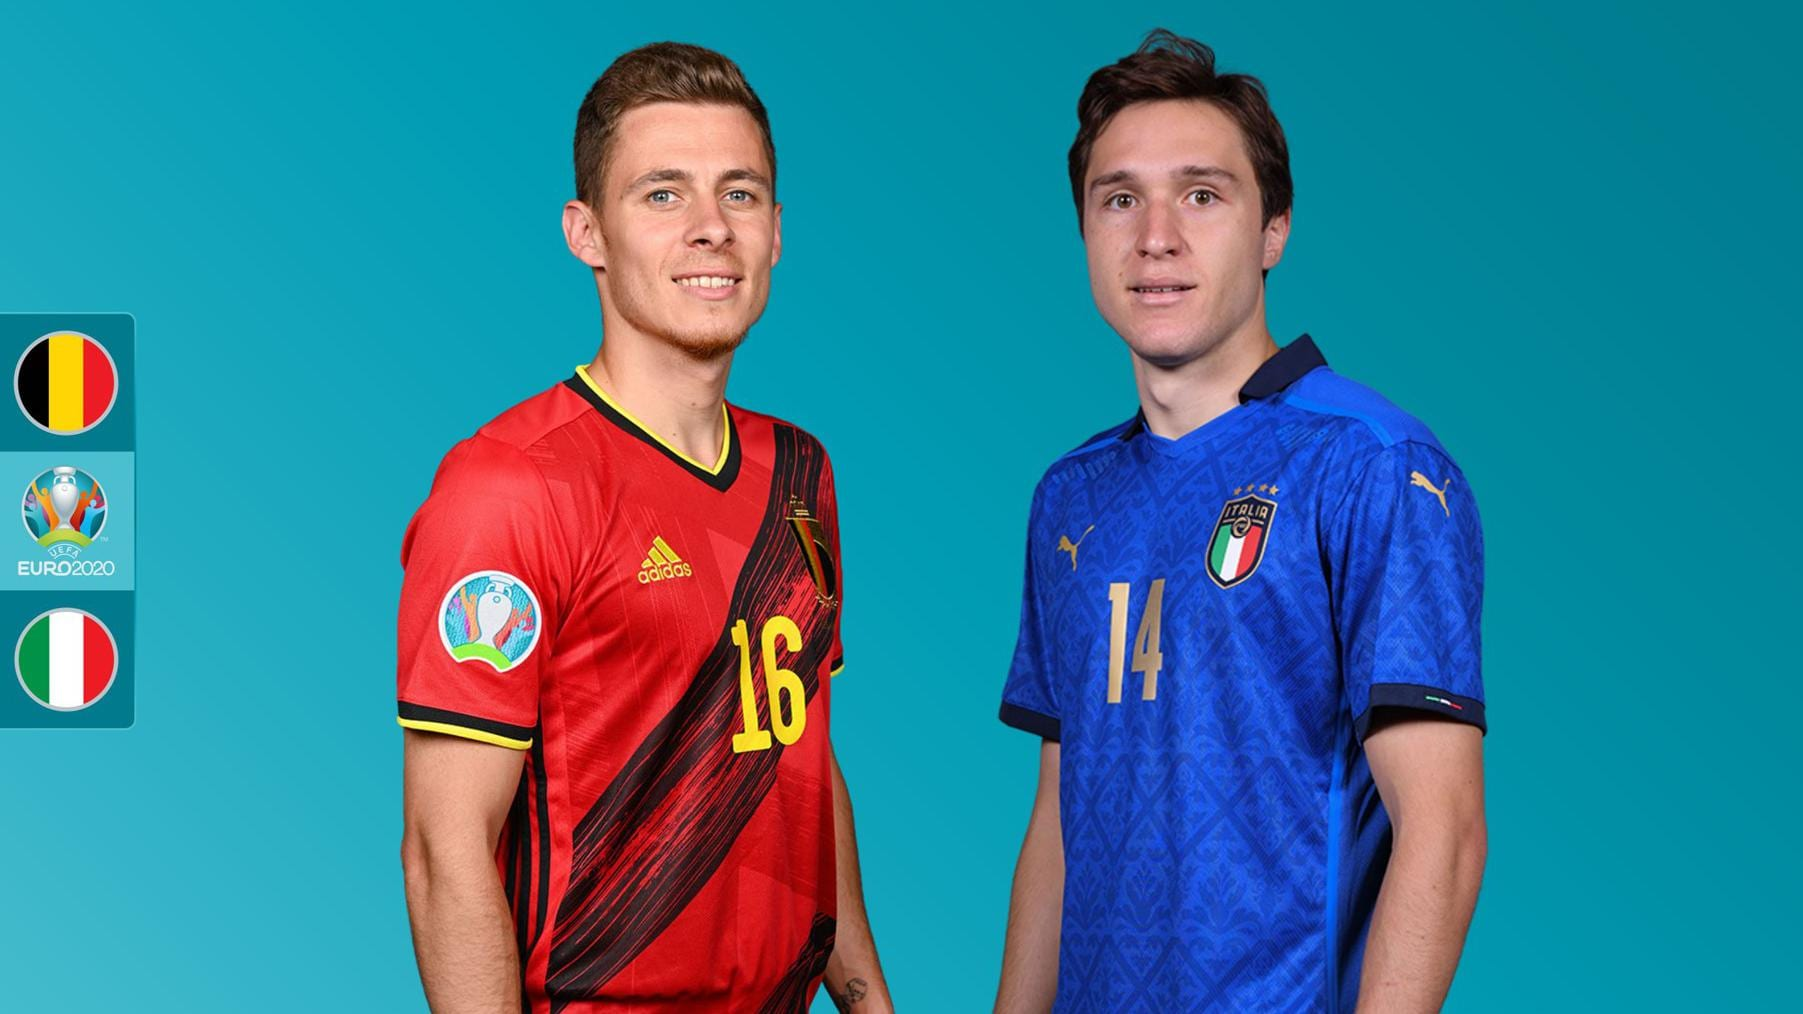 Belgium vs Italy UEFA EURO 2020 preview: where to watch, TV channels and live streams, starting line-ups, form guide